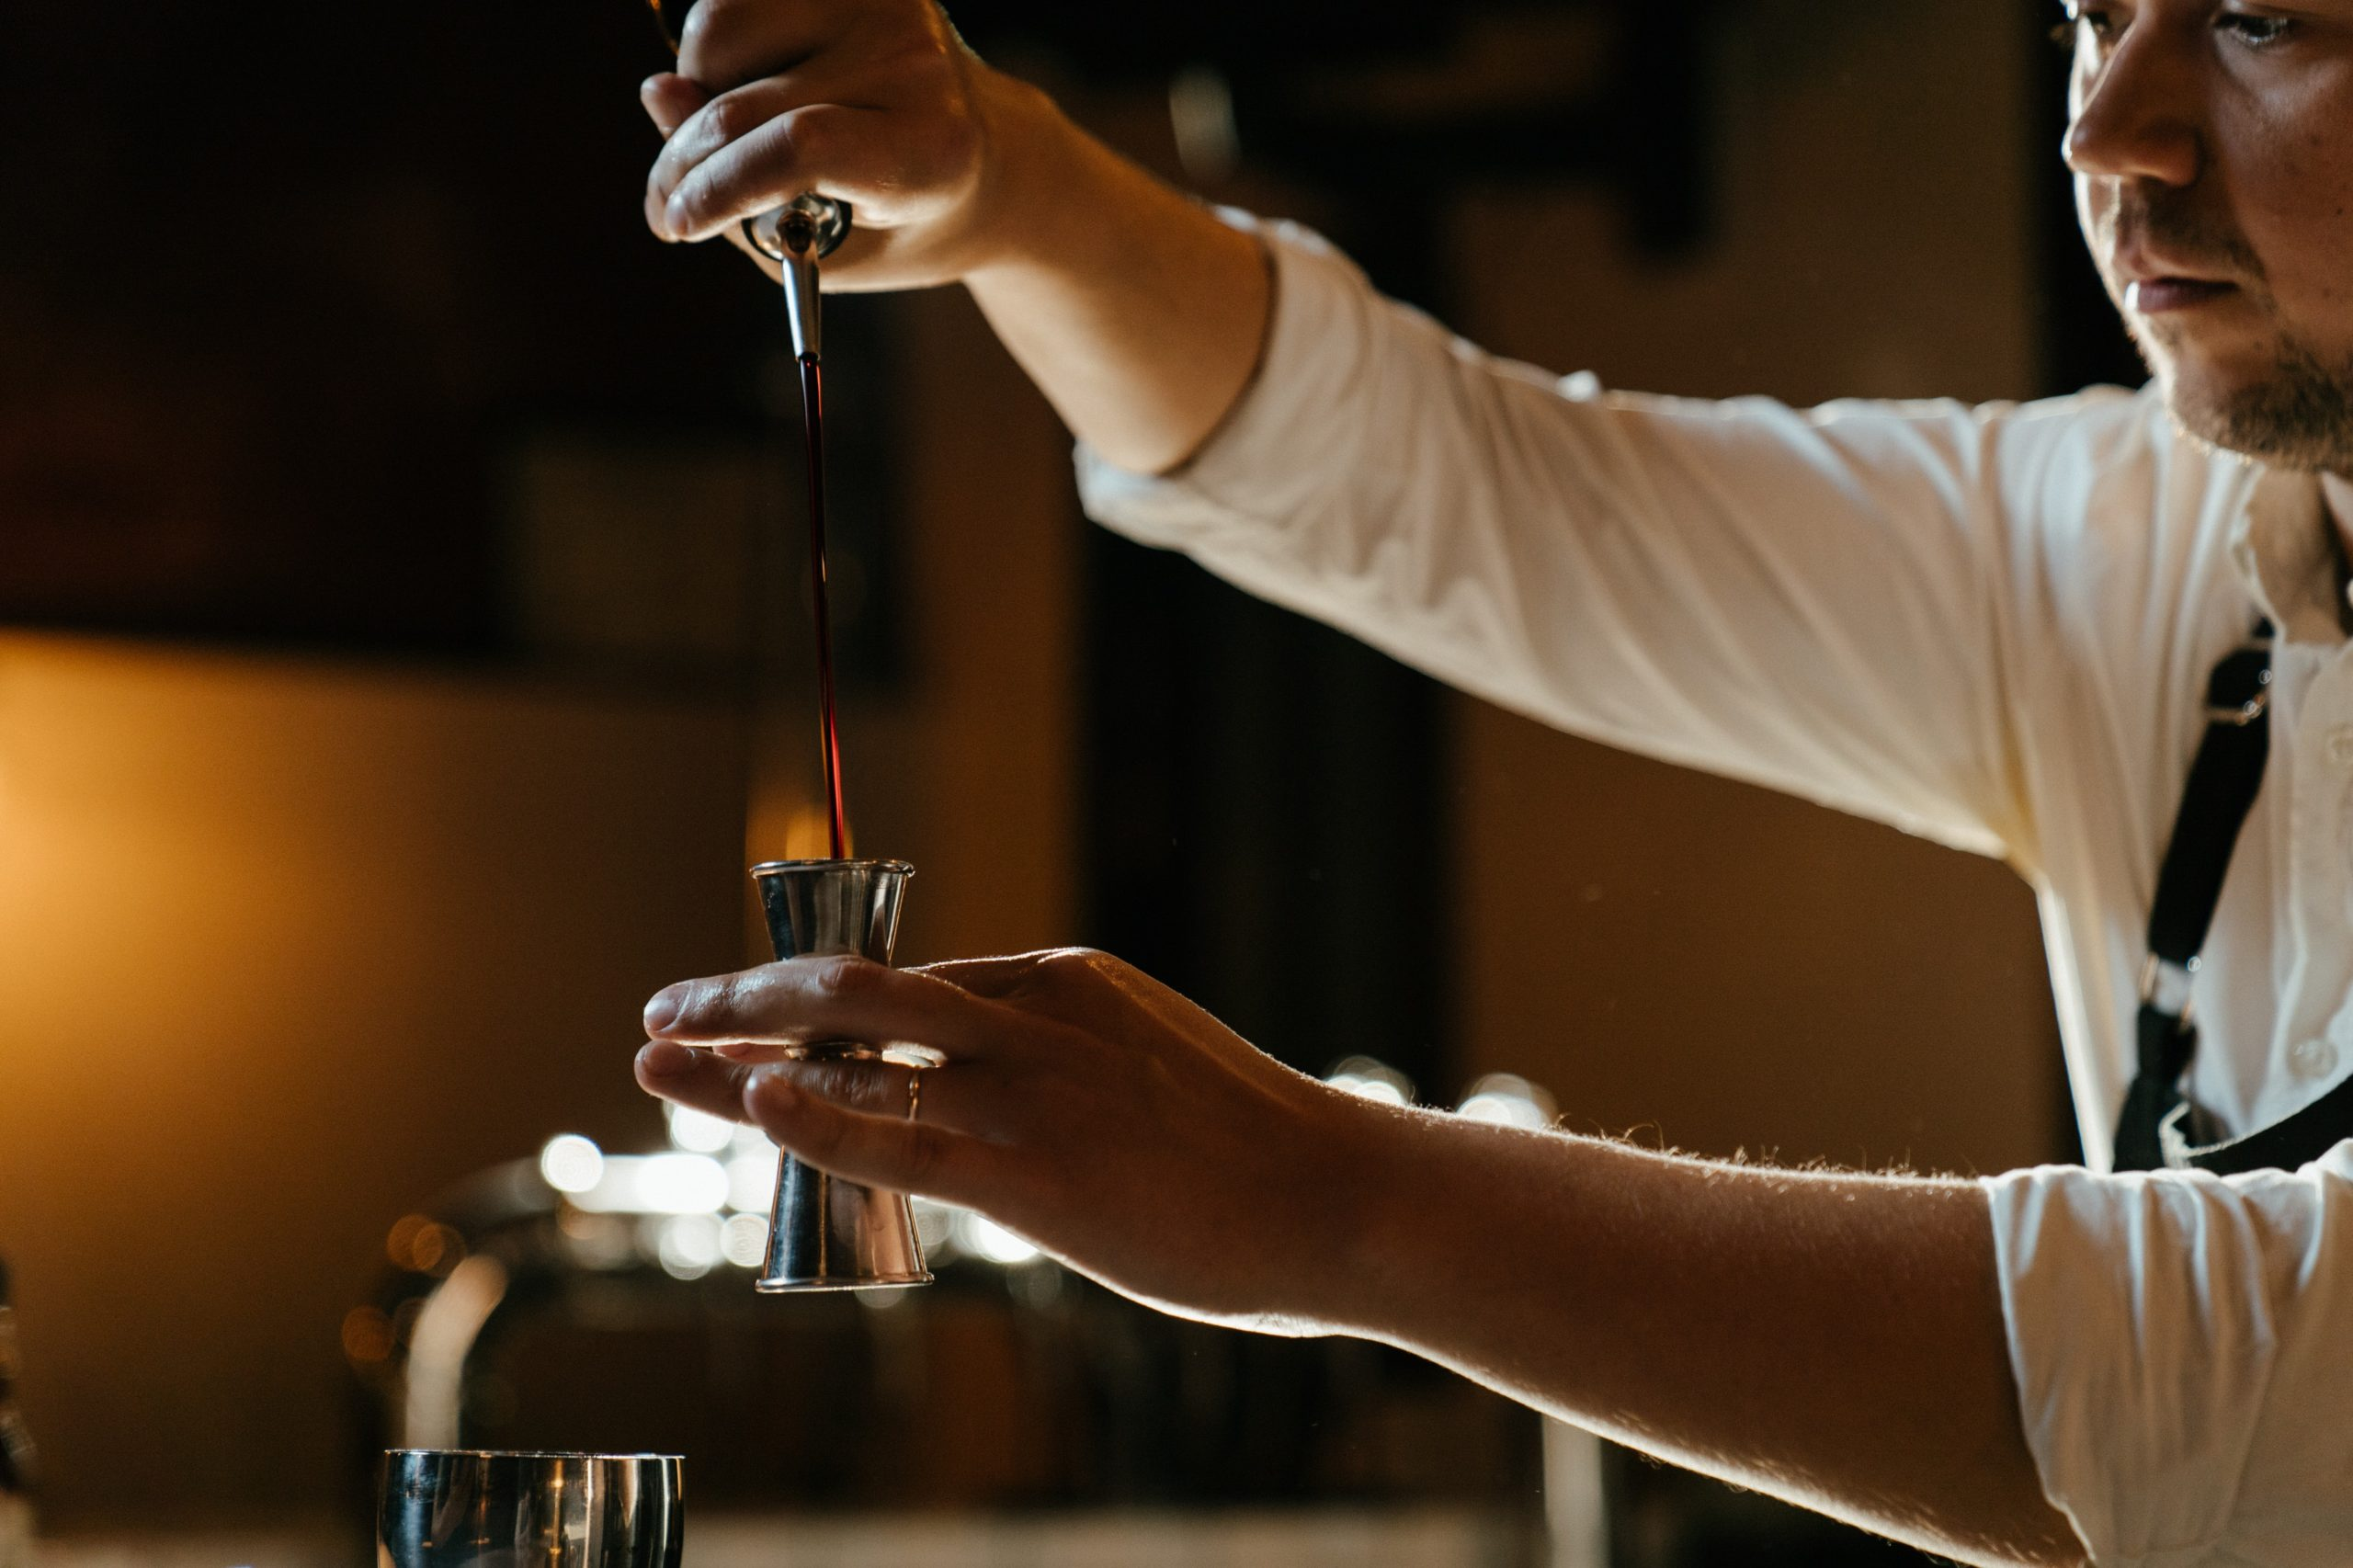 bartender pouring alcohol into a jigger in a bar